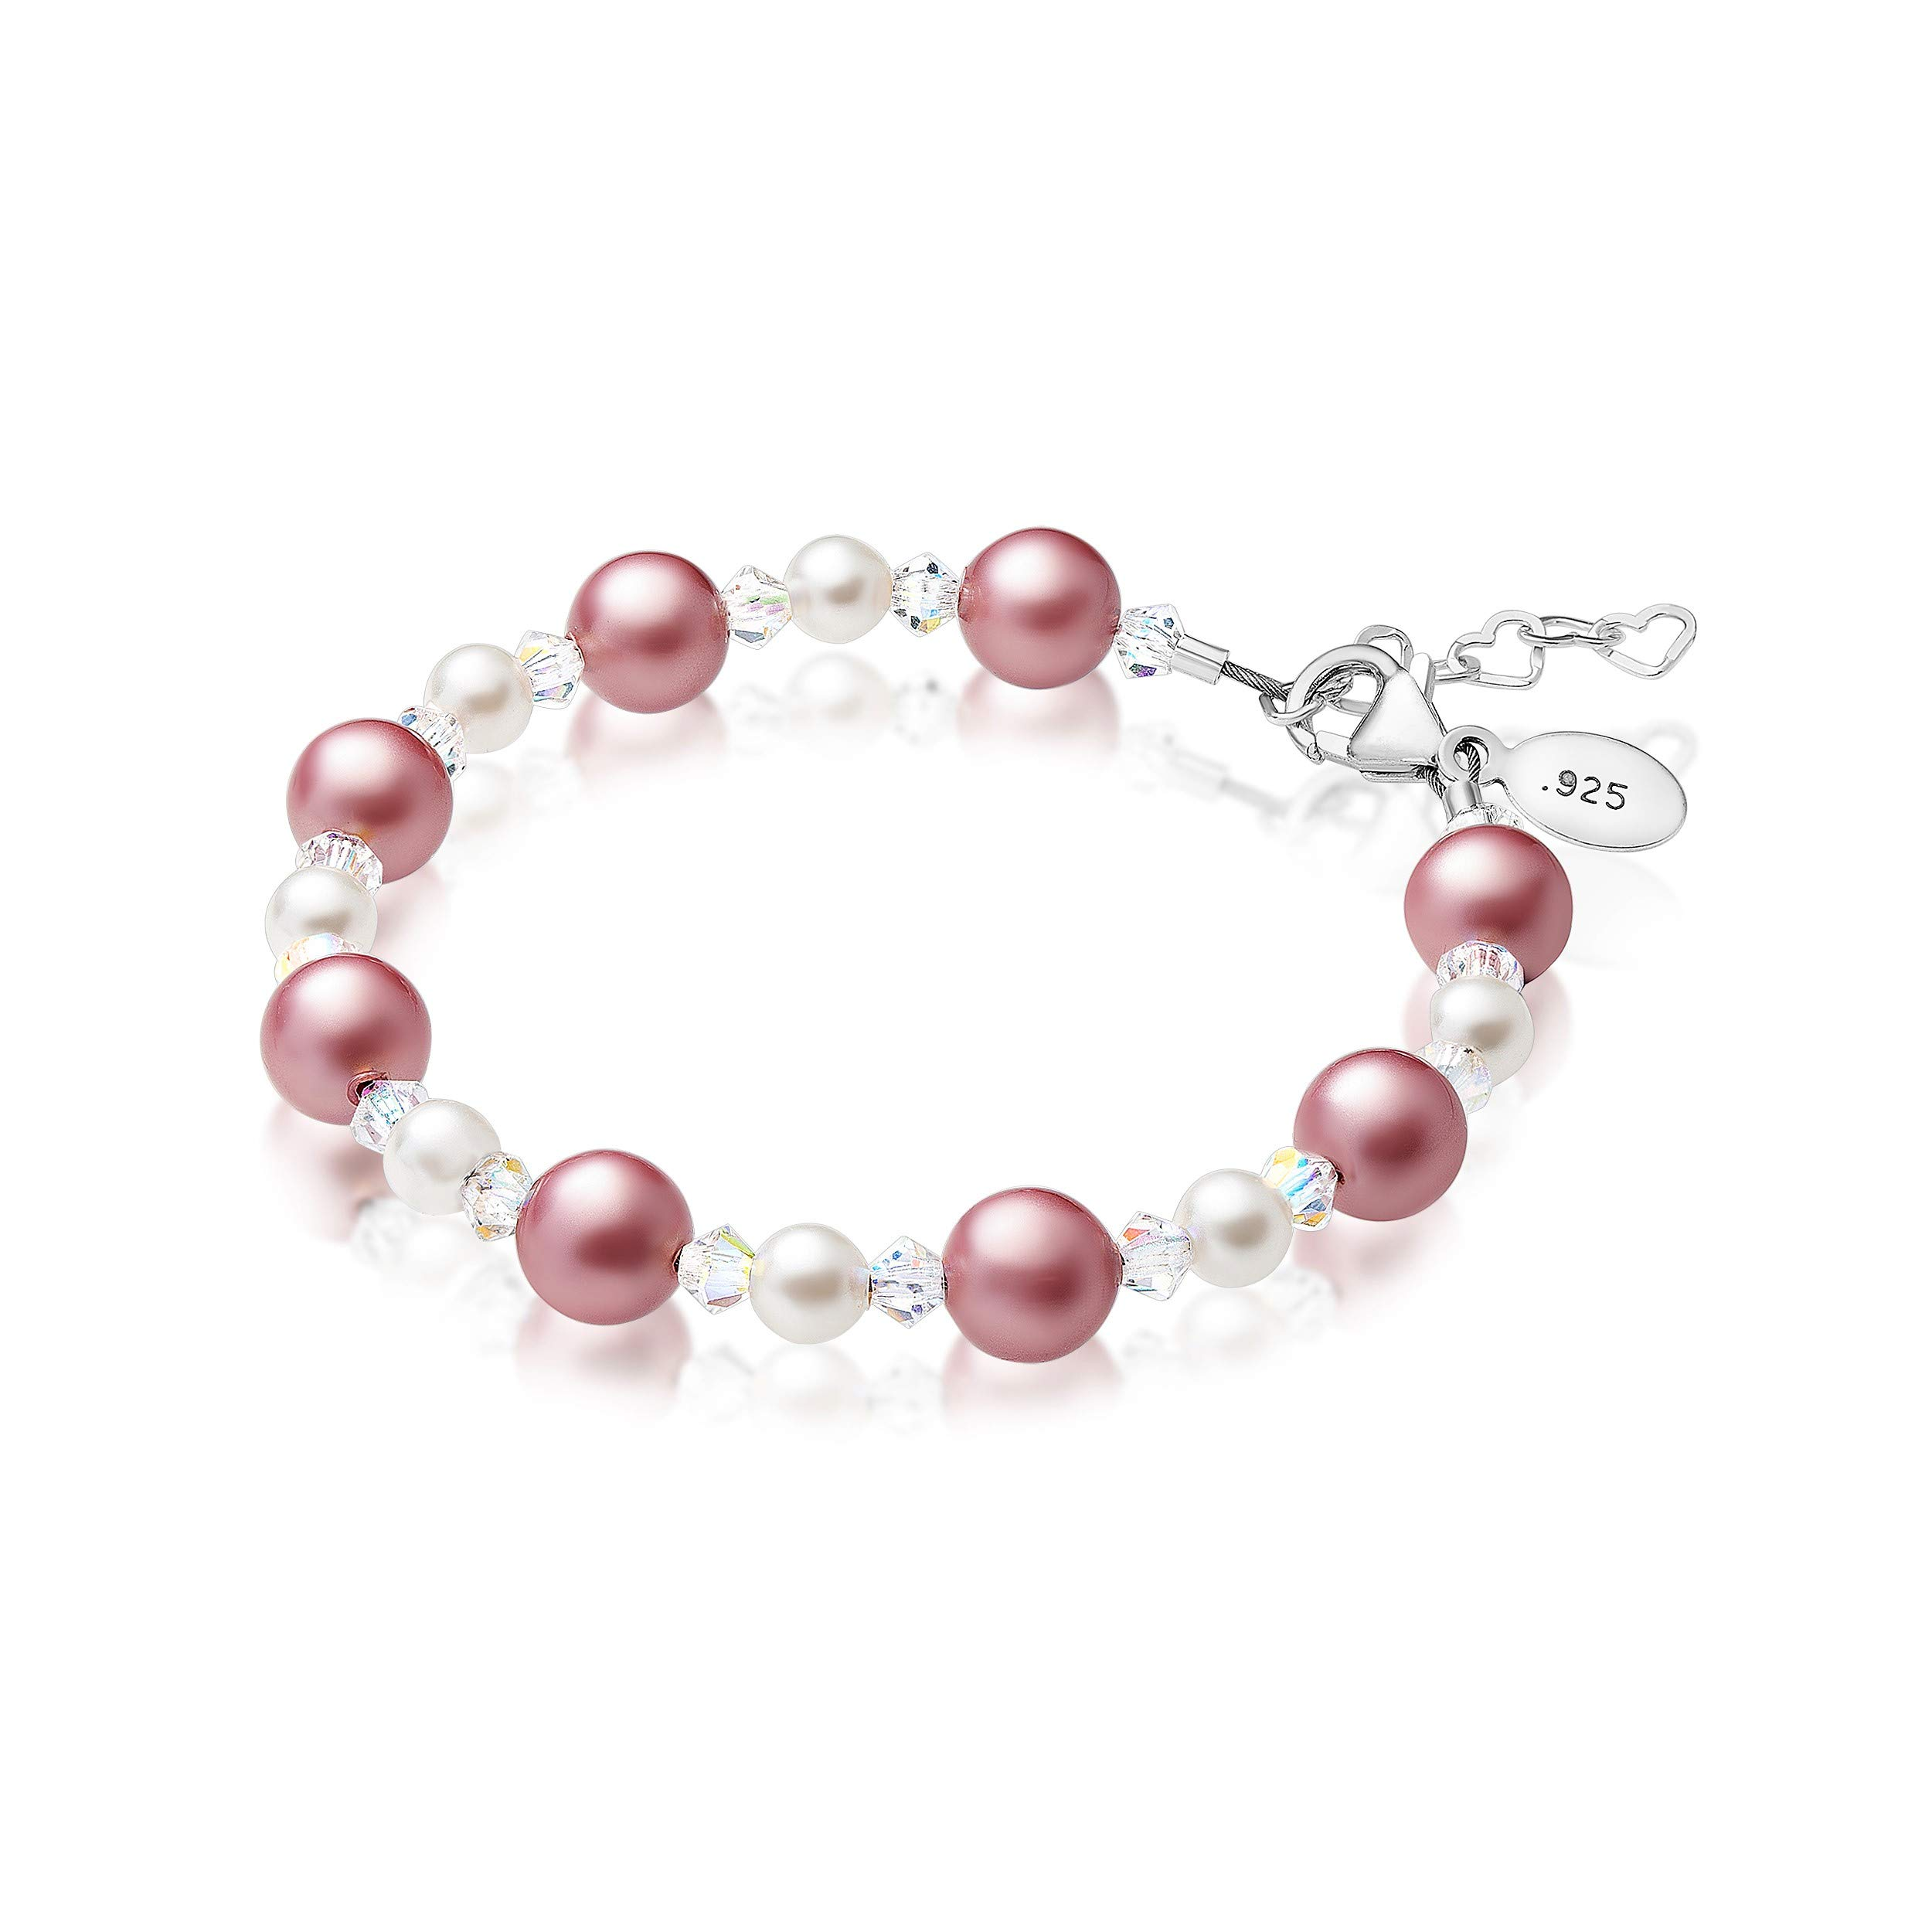 Baby Crystals Sterling Silver Bracelet for Young Girls |Girly Gifts for Girls | Children's Jewelry for Little Girls Embellished with Simulated Pearls & Crystals from Swarovski (18 Months -4 Years)